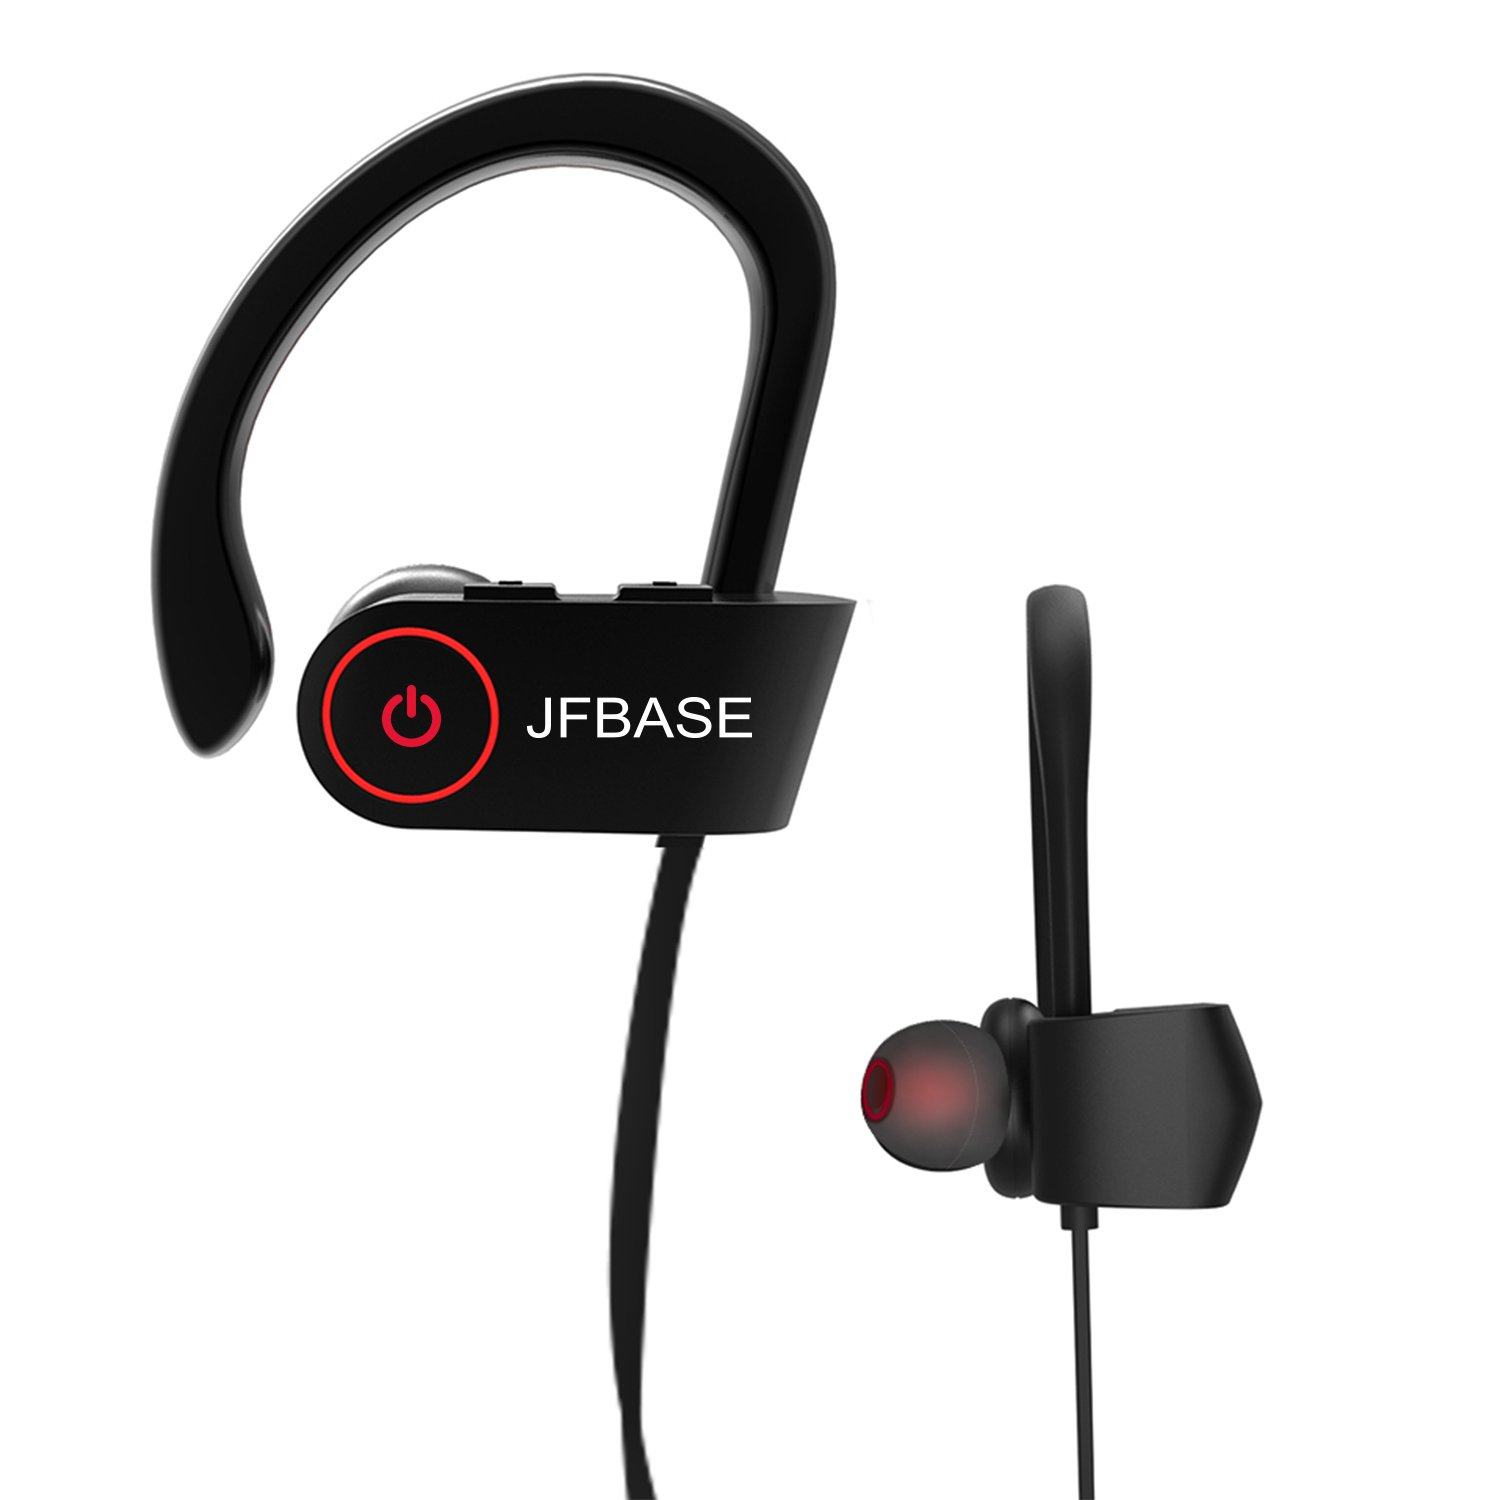 Bluetooth Headphones, JFBASE Wireless Waterproof Sports Earphones with Built-in Mic for Outdoor Exercise, HD Stereo Sweatproof Earbuds for Gym Running, Noise Cancelling IPX7 Headsets 8 Hour Battery